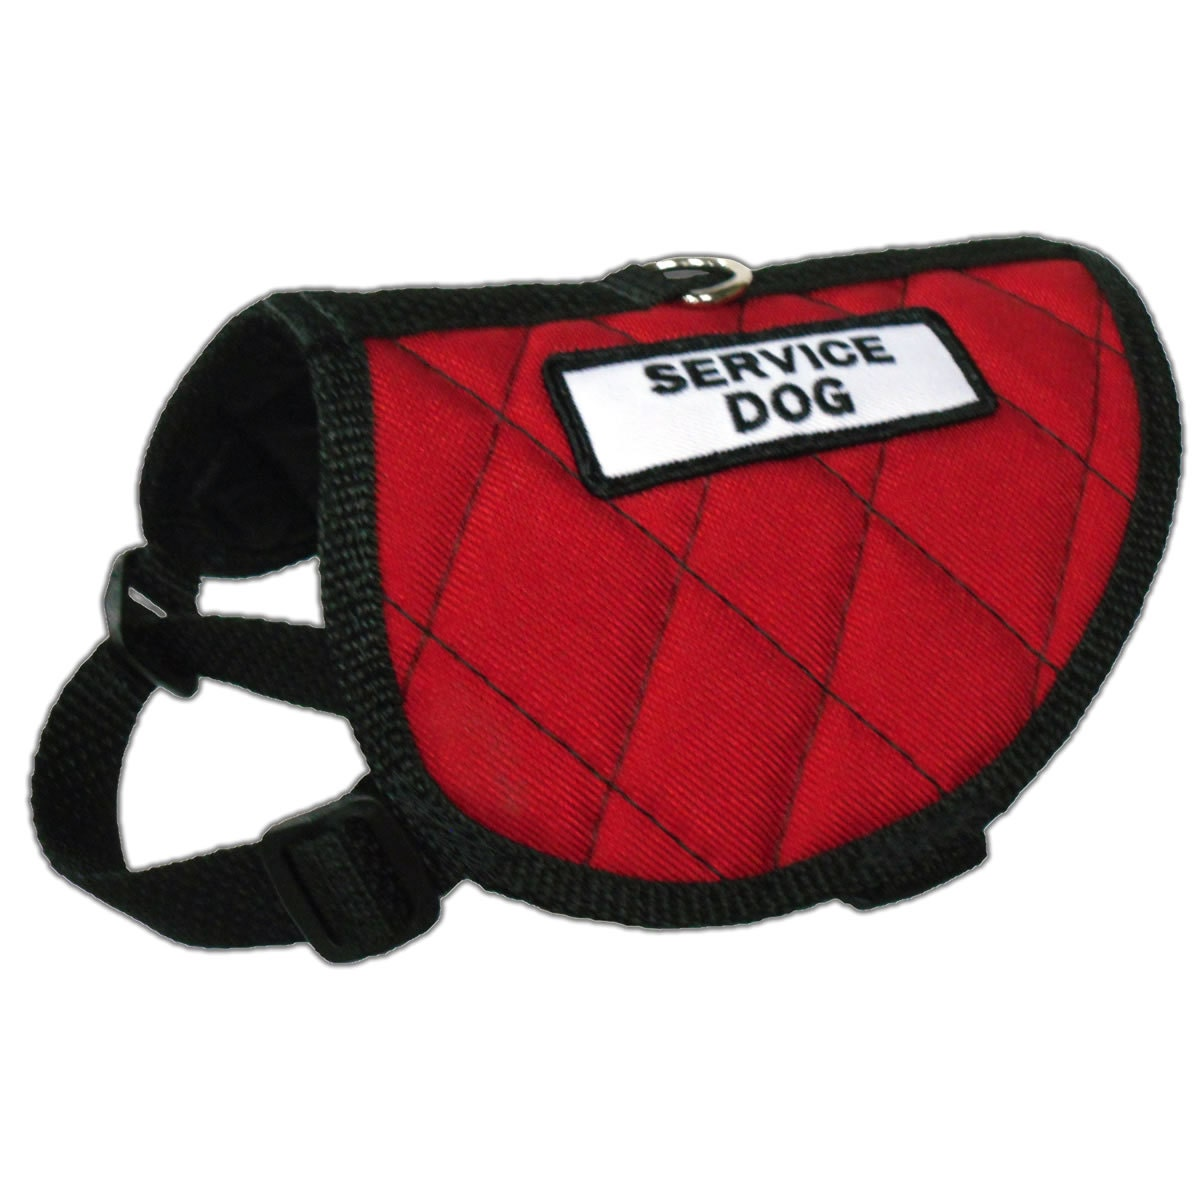 Service Dog Patches Free Shipping